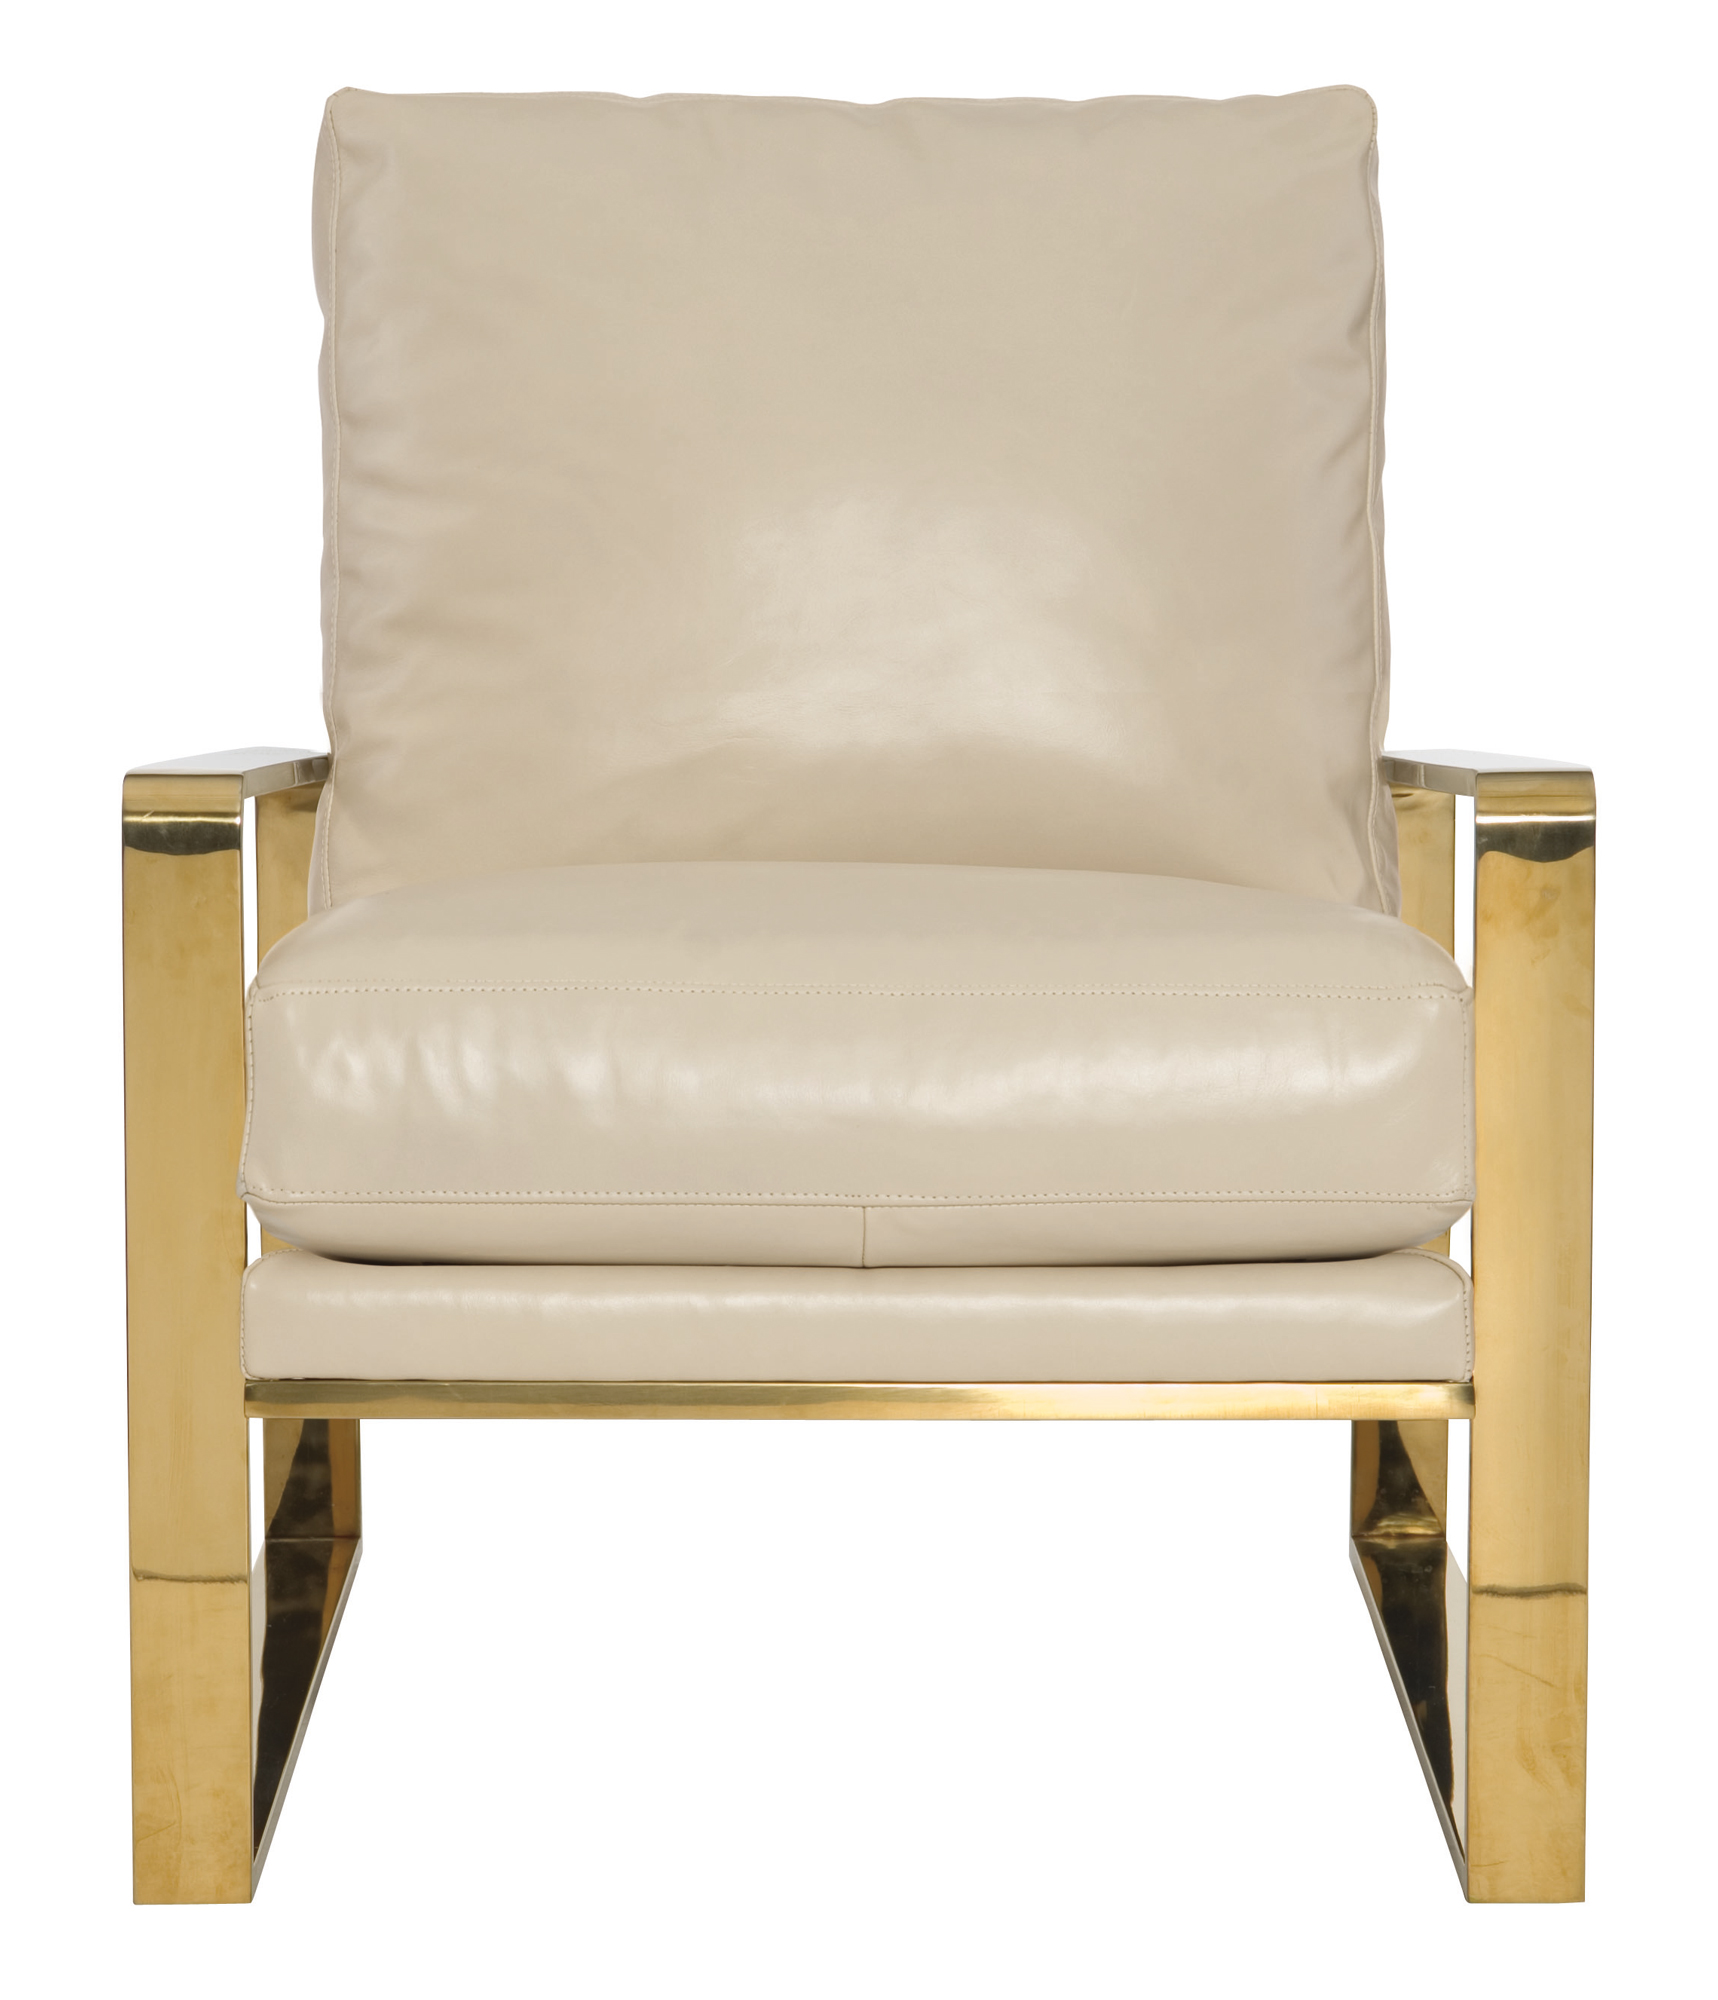 Chair bernhardt for Bernhardt furniture